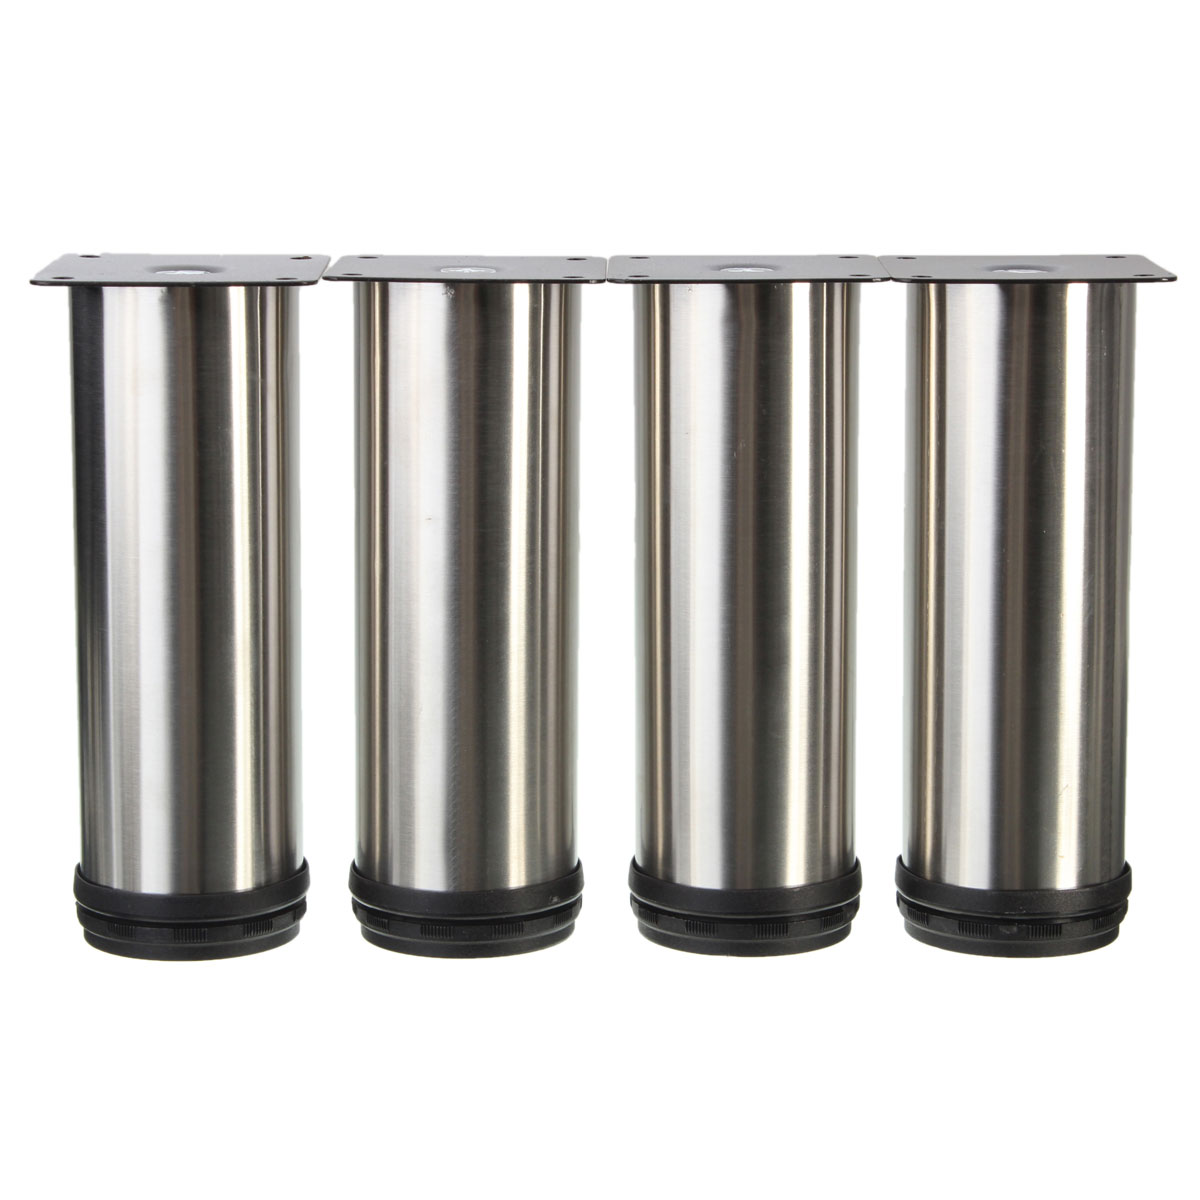 Adjustable Kitchen Cabinet Legs: 4Pcs Cabinet Legs Adjustable Stainless Steel Kitchen Feet